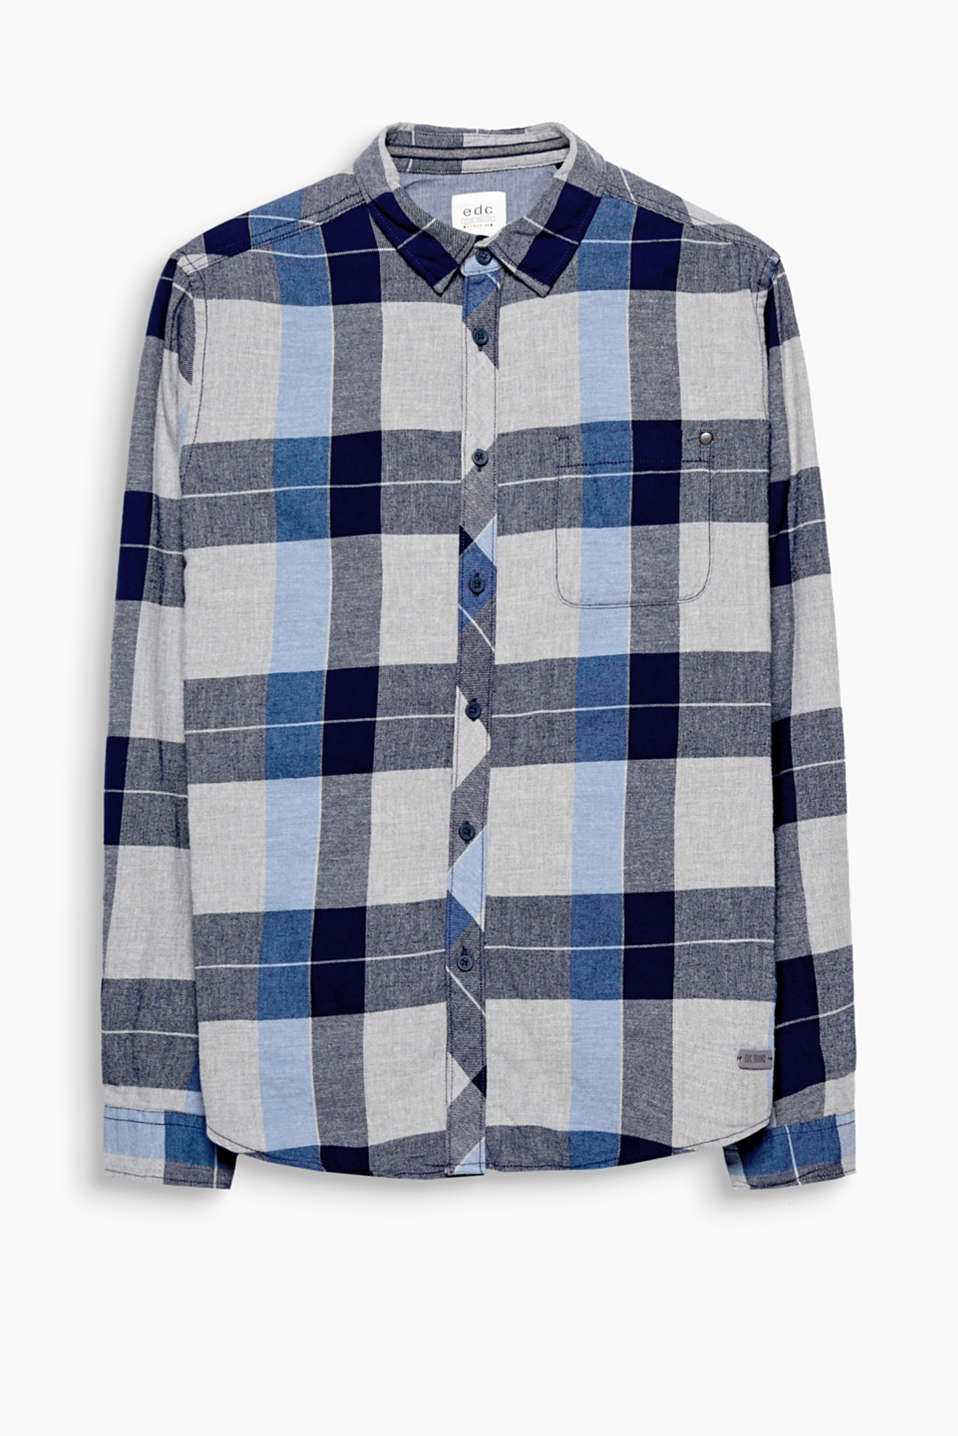 This shirt defined by its dense cotton blend fabric is perfect for a trip to the countryside.